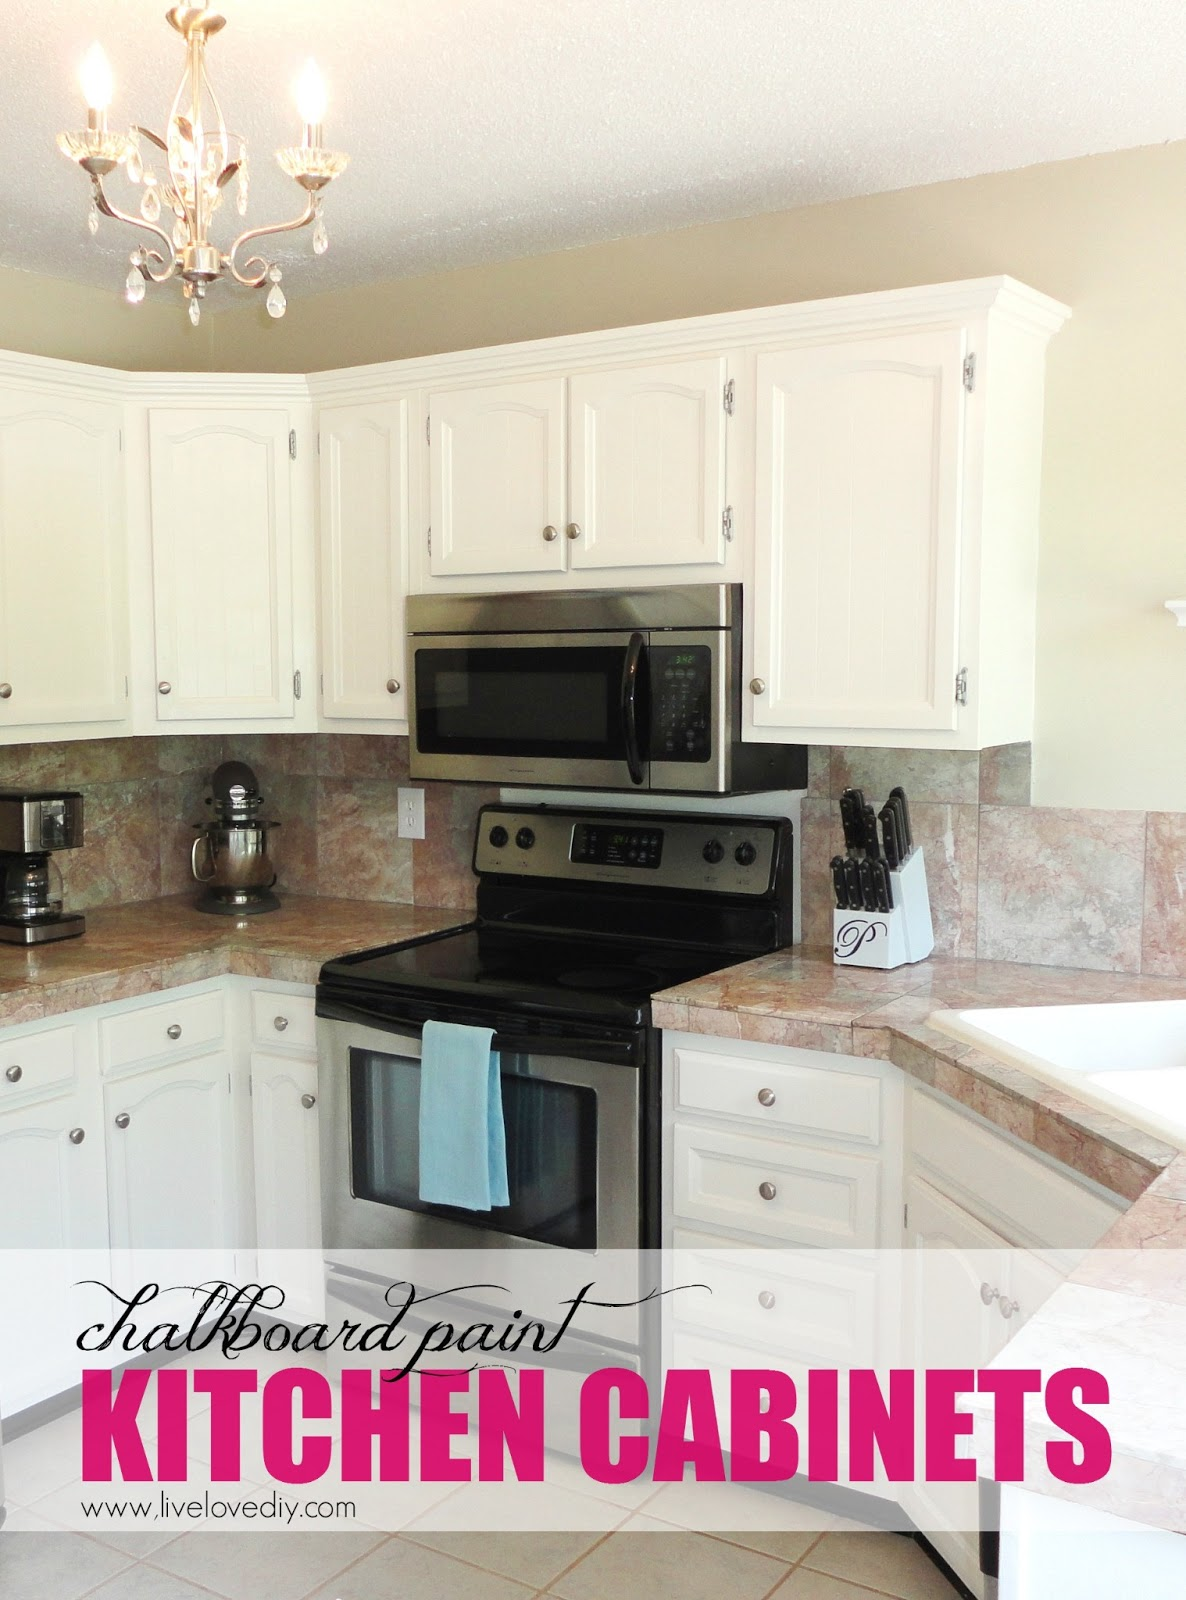 Kitchen Cabinet Colors 2012 Livelovediy The Chalkboard Paint Kitchen Cabinet Makeover